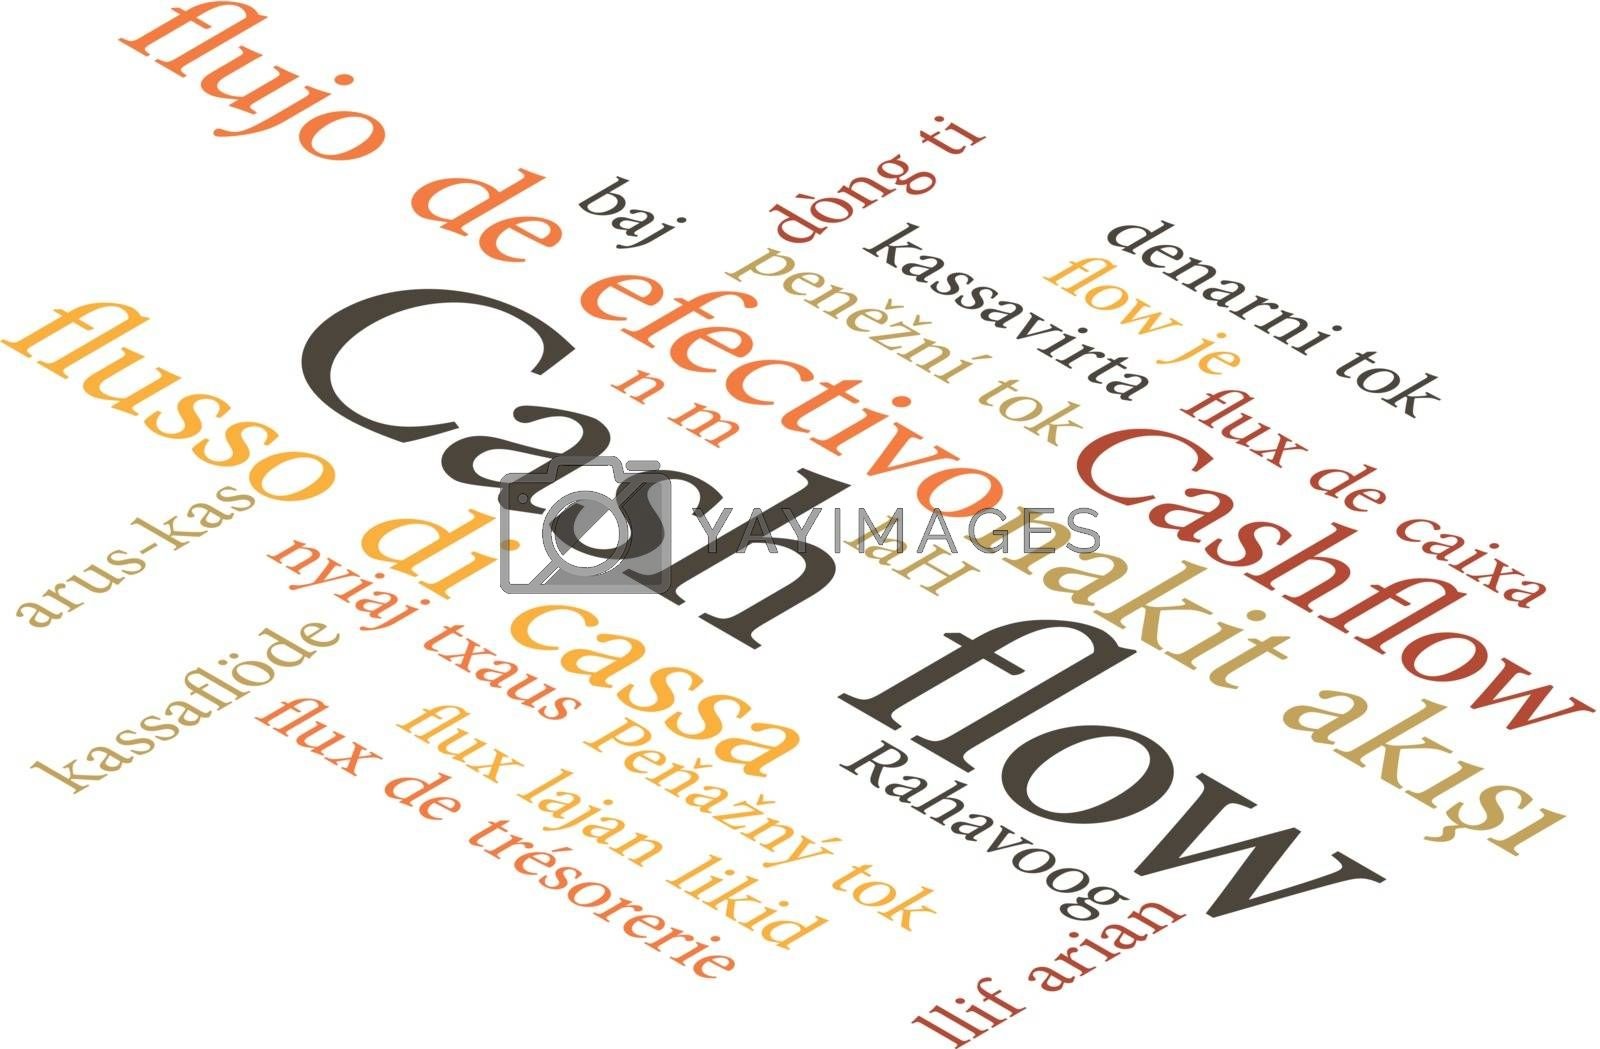 illustration of the word Cash flow in wordclouds by Istanbul2009